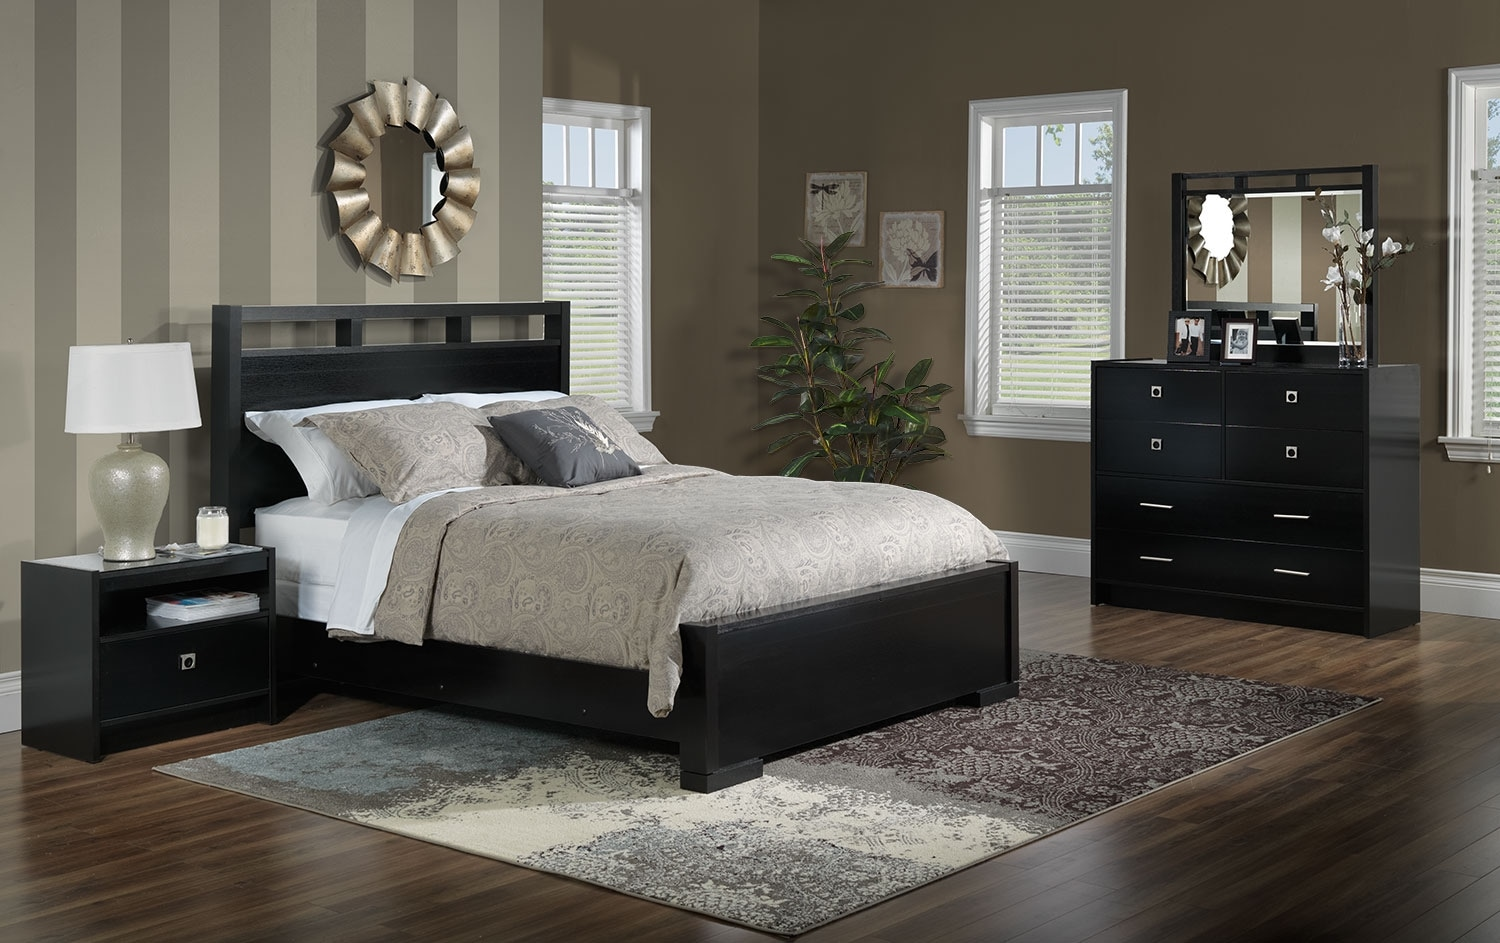 Altissa 5-Piece King Bedroom Set - Espresso